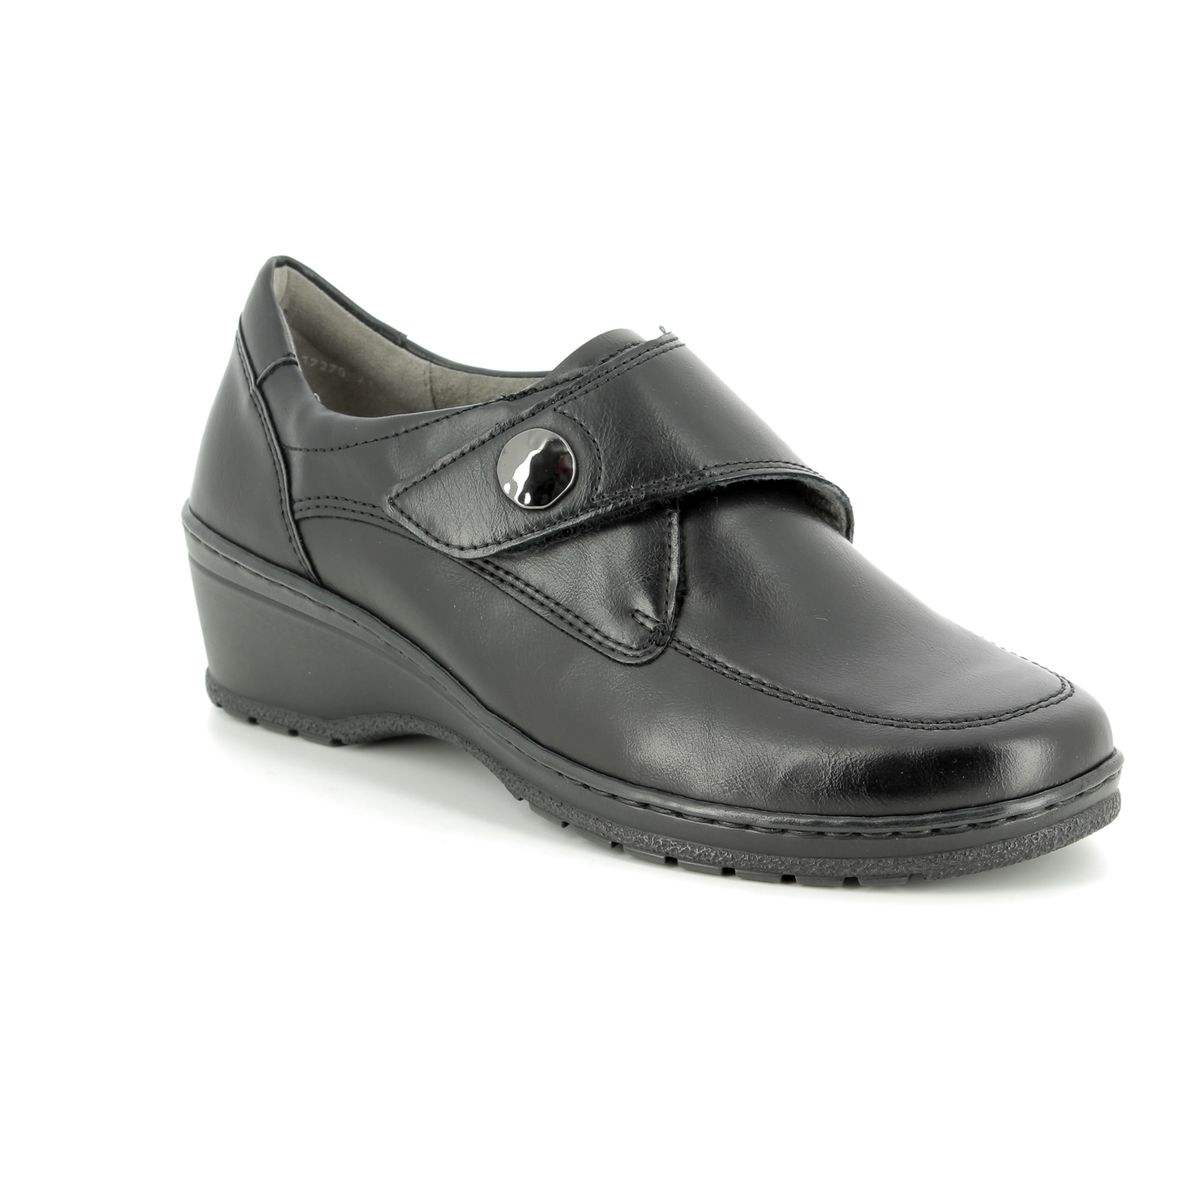 ebc137920b04 Ara Wedge Shoes - Black - 17375 71 CREMONA VEL WI